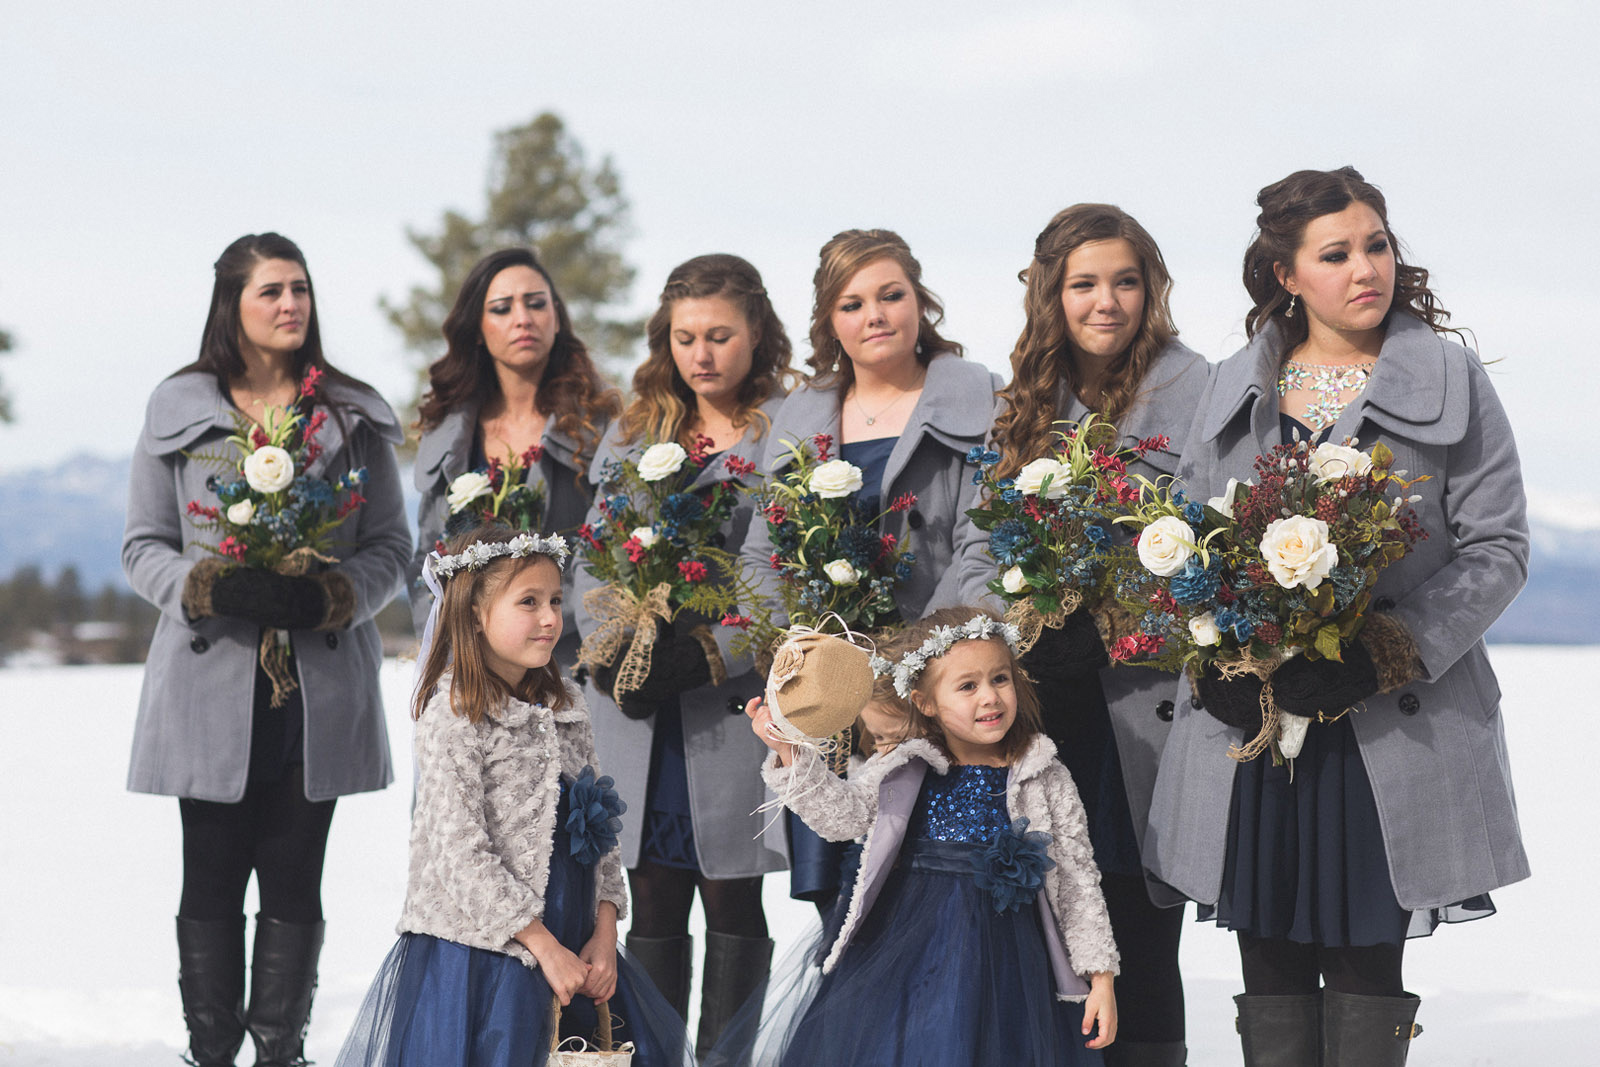 110-wedding-ceremony-in-pagosa-springs-wedding-photographer-snow-winter-wedding